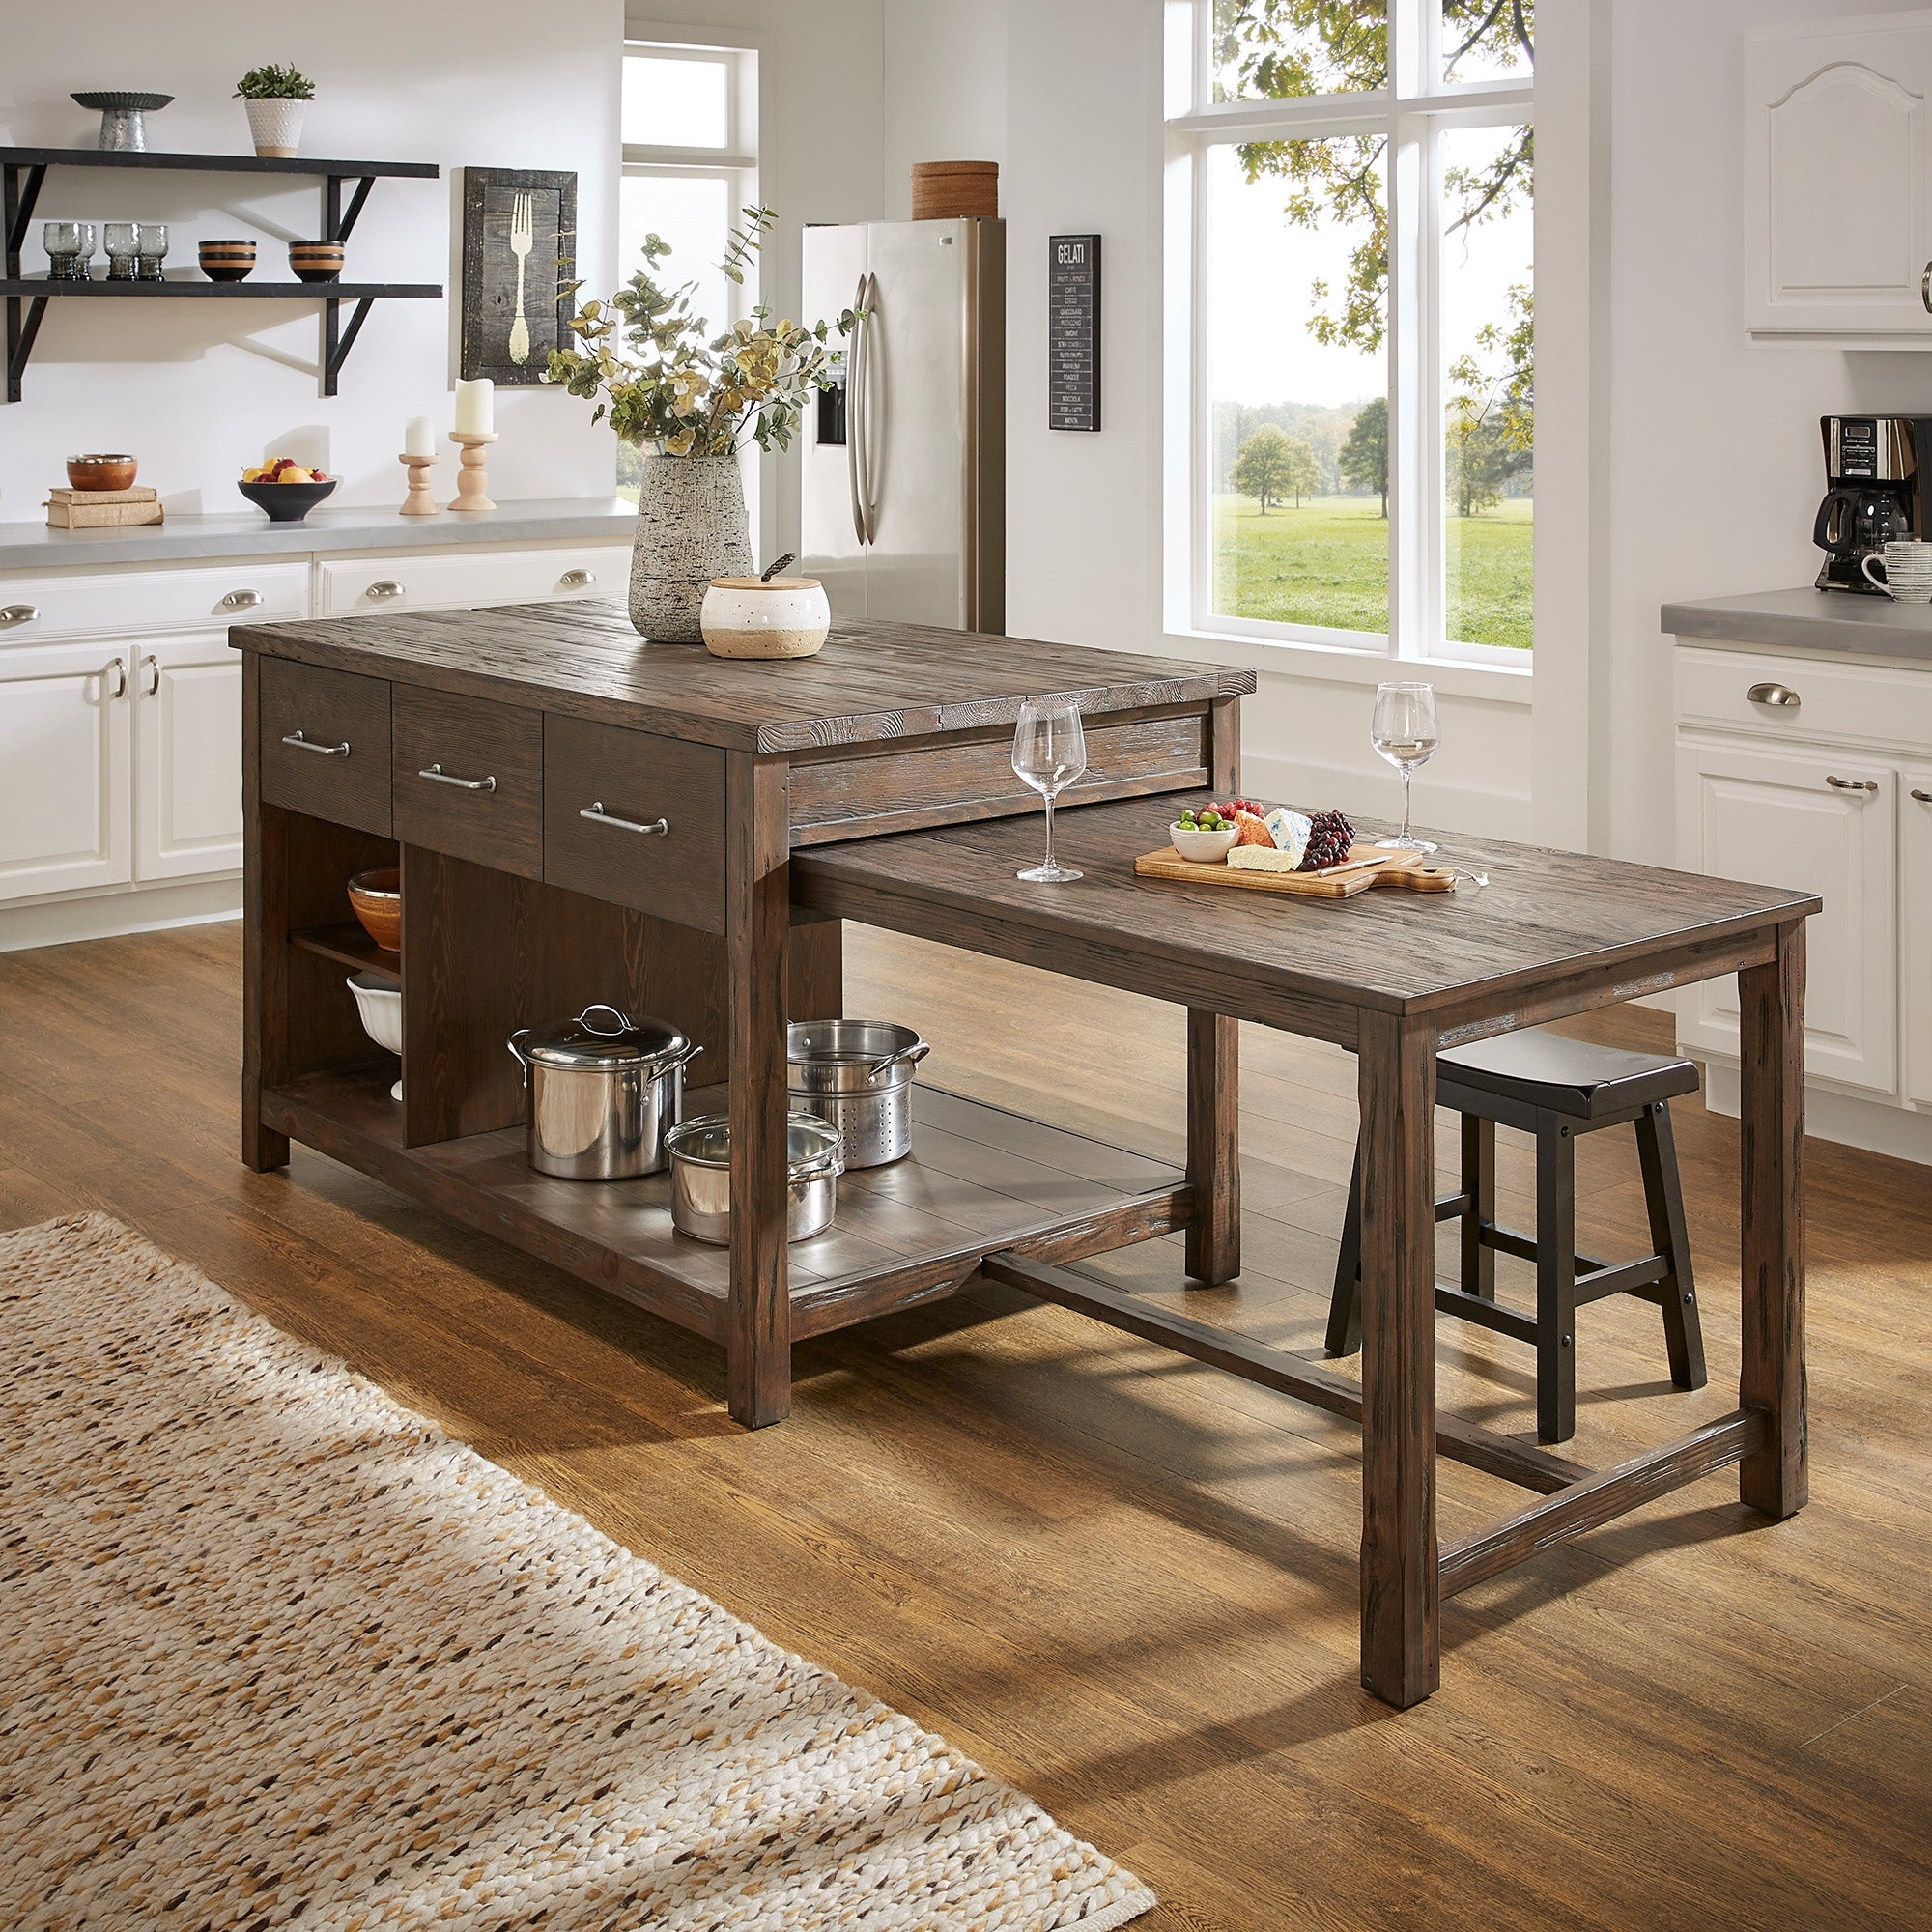 Tali Reclaimed Wood Extendable Kitchen Island By Inspire Q Classic Overstock 25576038 Brown Finish Brown Top